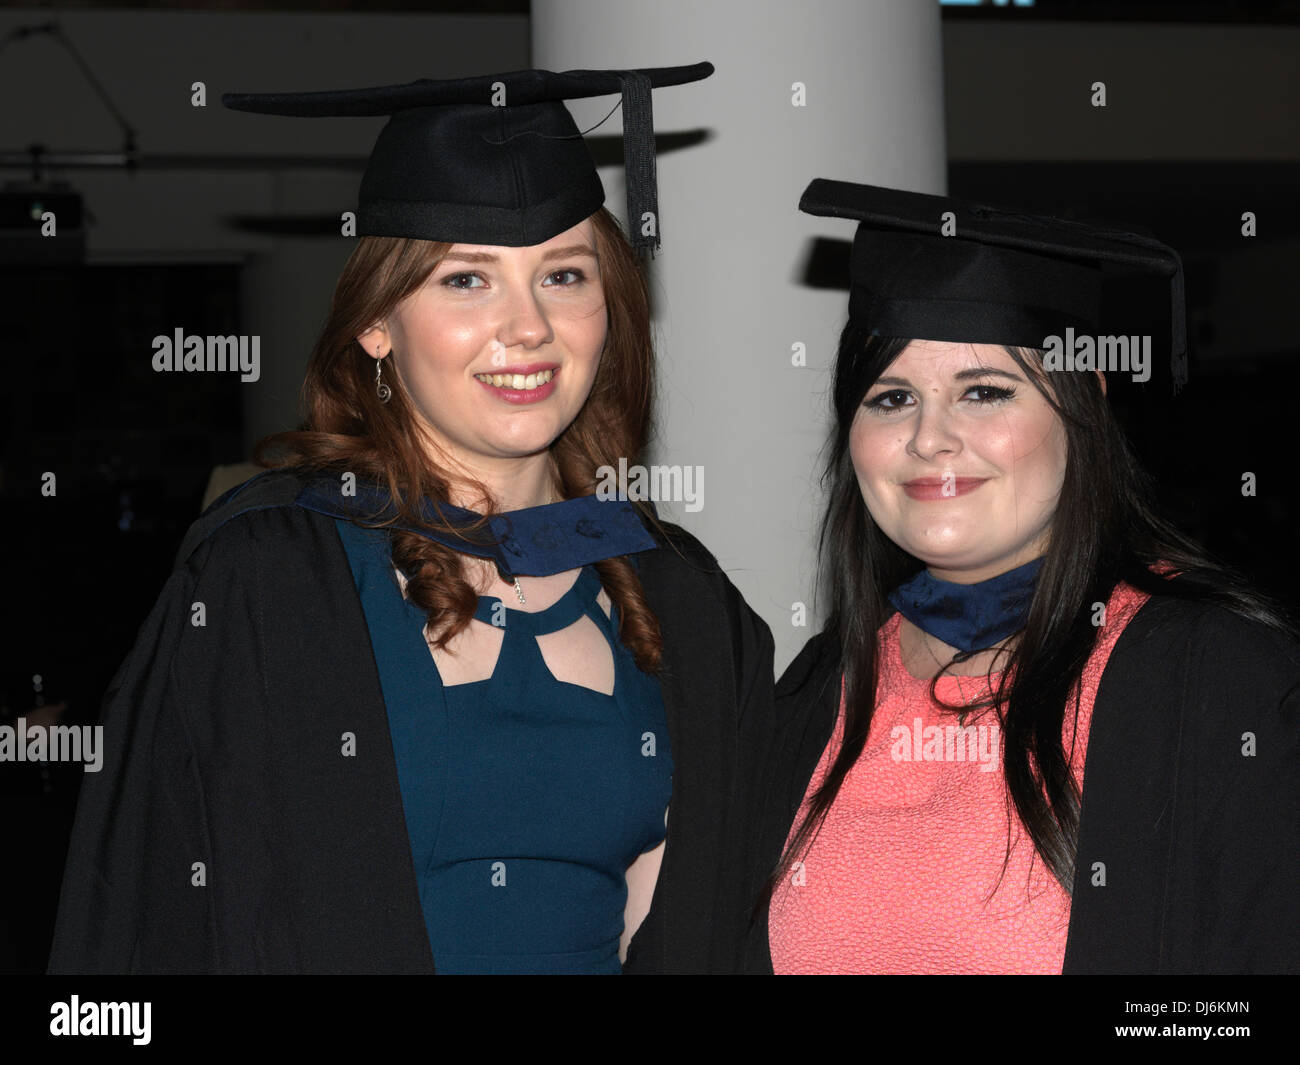 London England Young Women At their Graduation Ceremony Wearing Mortar Boards And Graduation Gowns - Stock Image